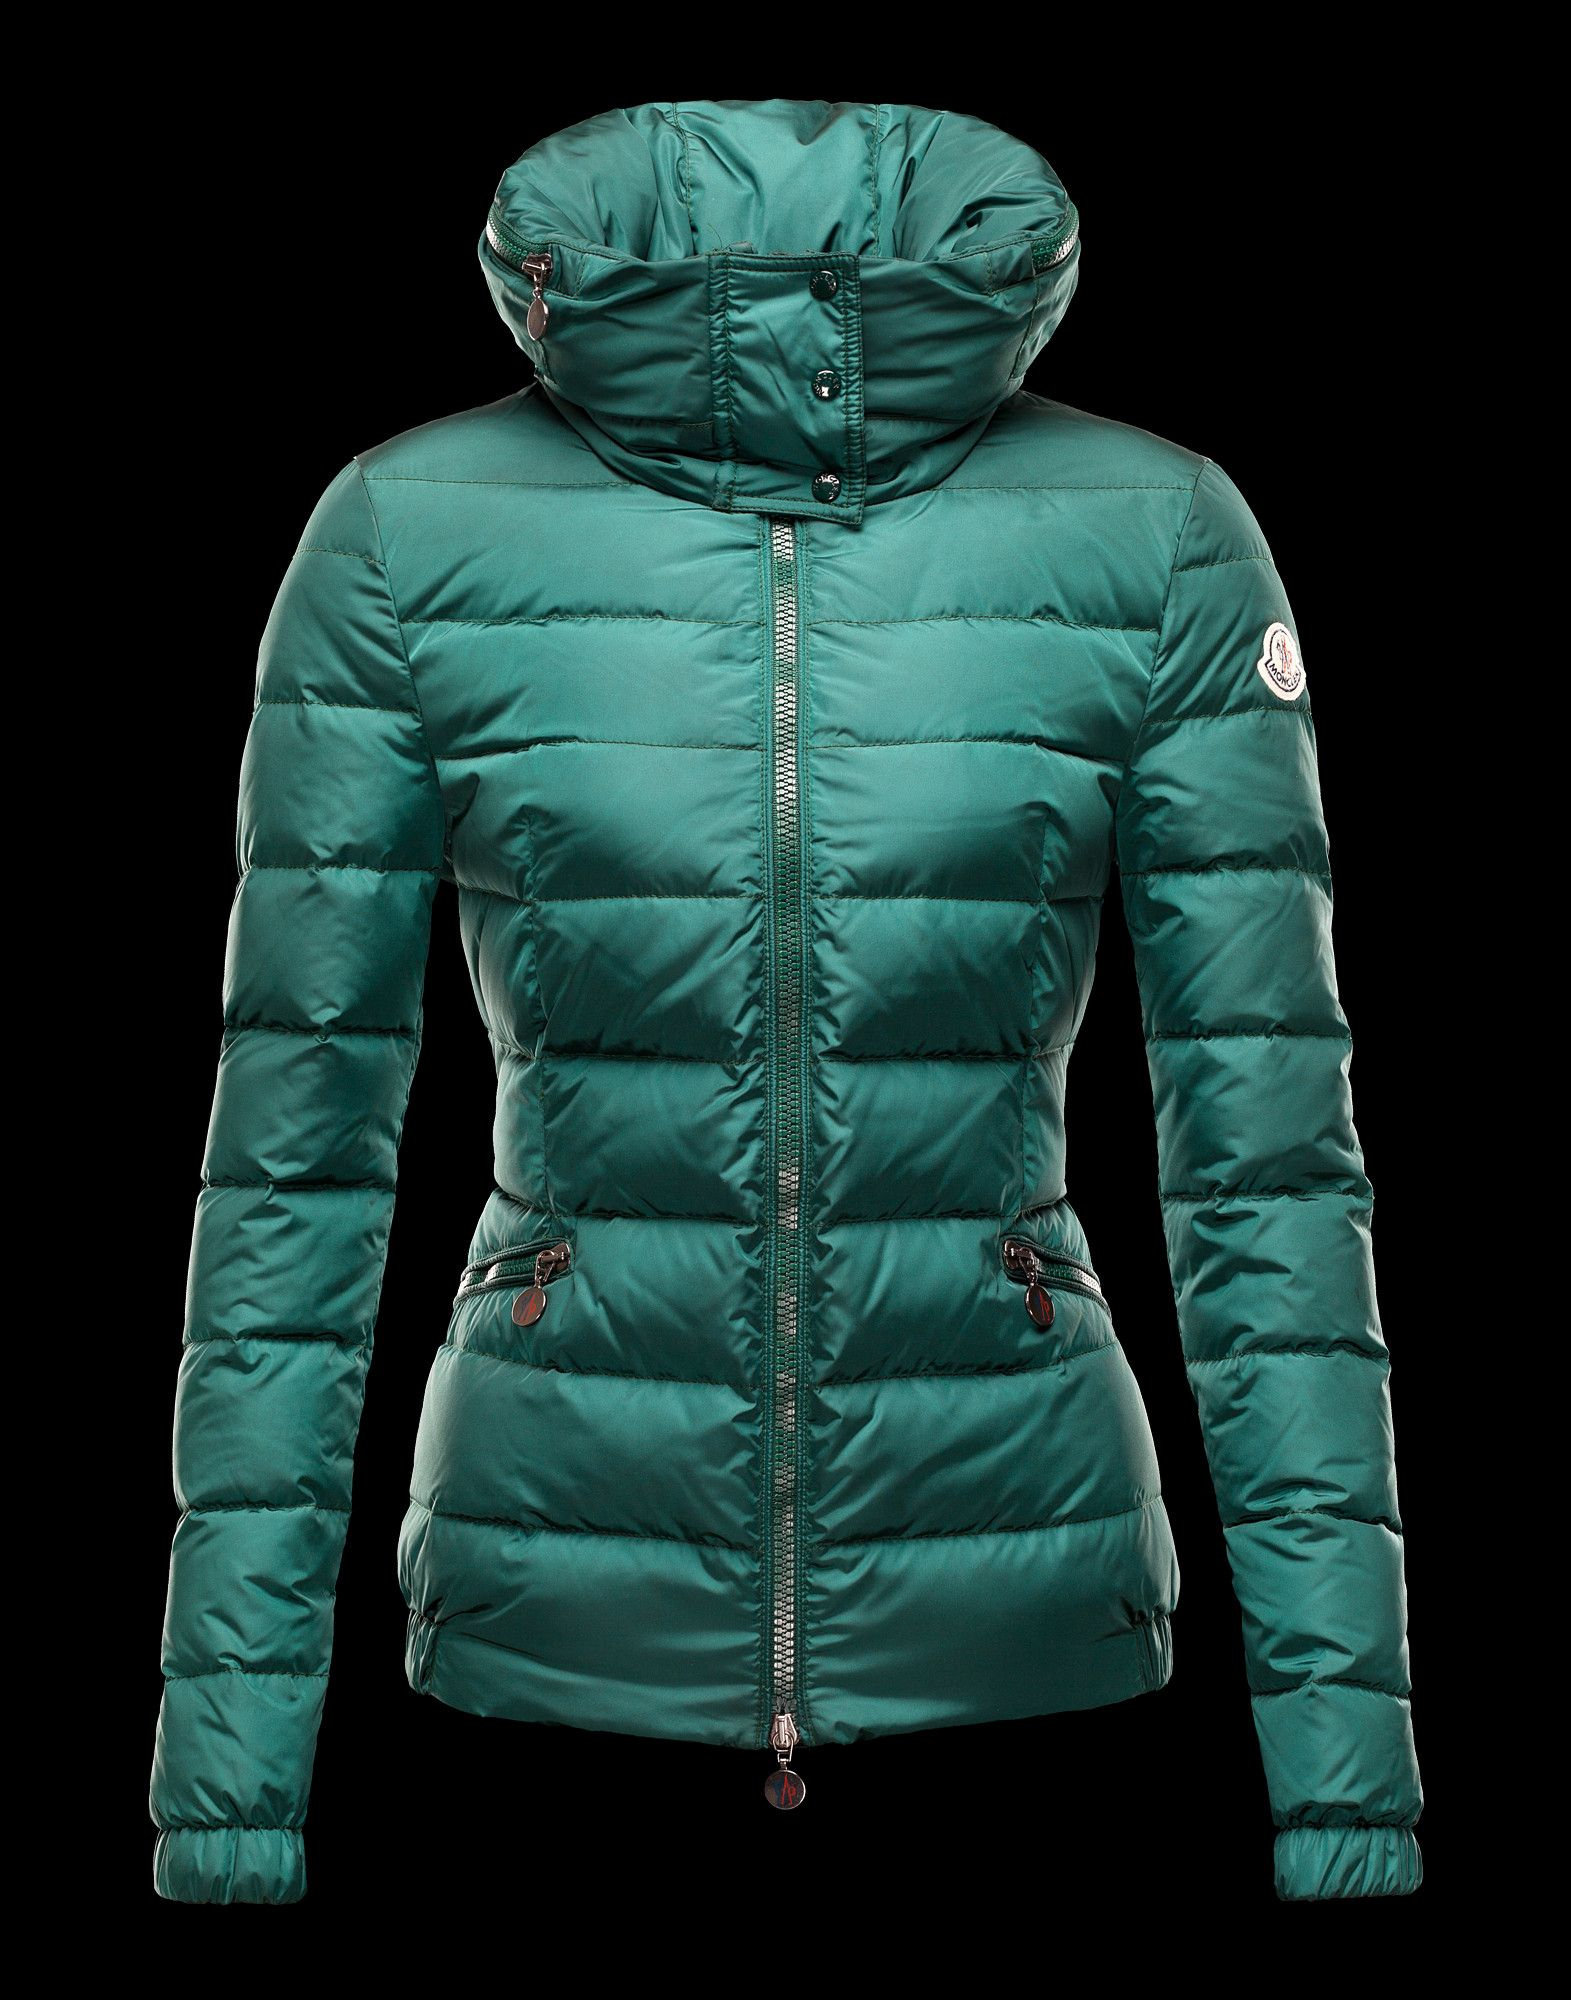 fa01f0c1d607 MONCLER Women - Fall Winter 12 - OUTERWEAR - Jacket - SANGLIER